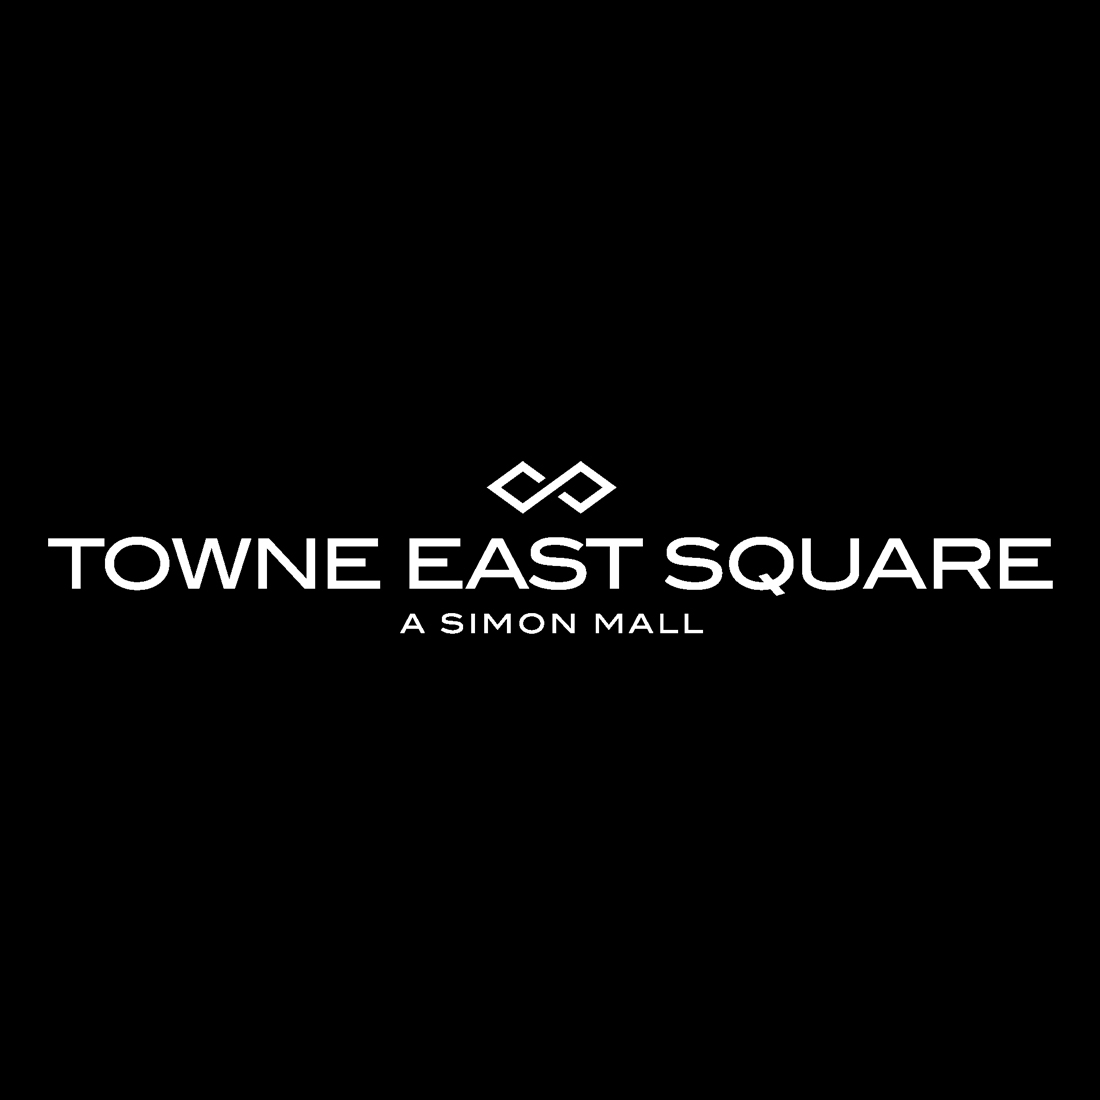 Towne East Square